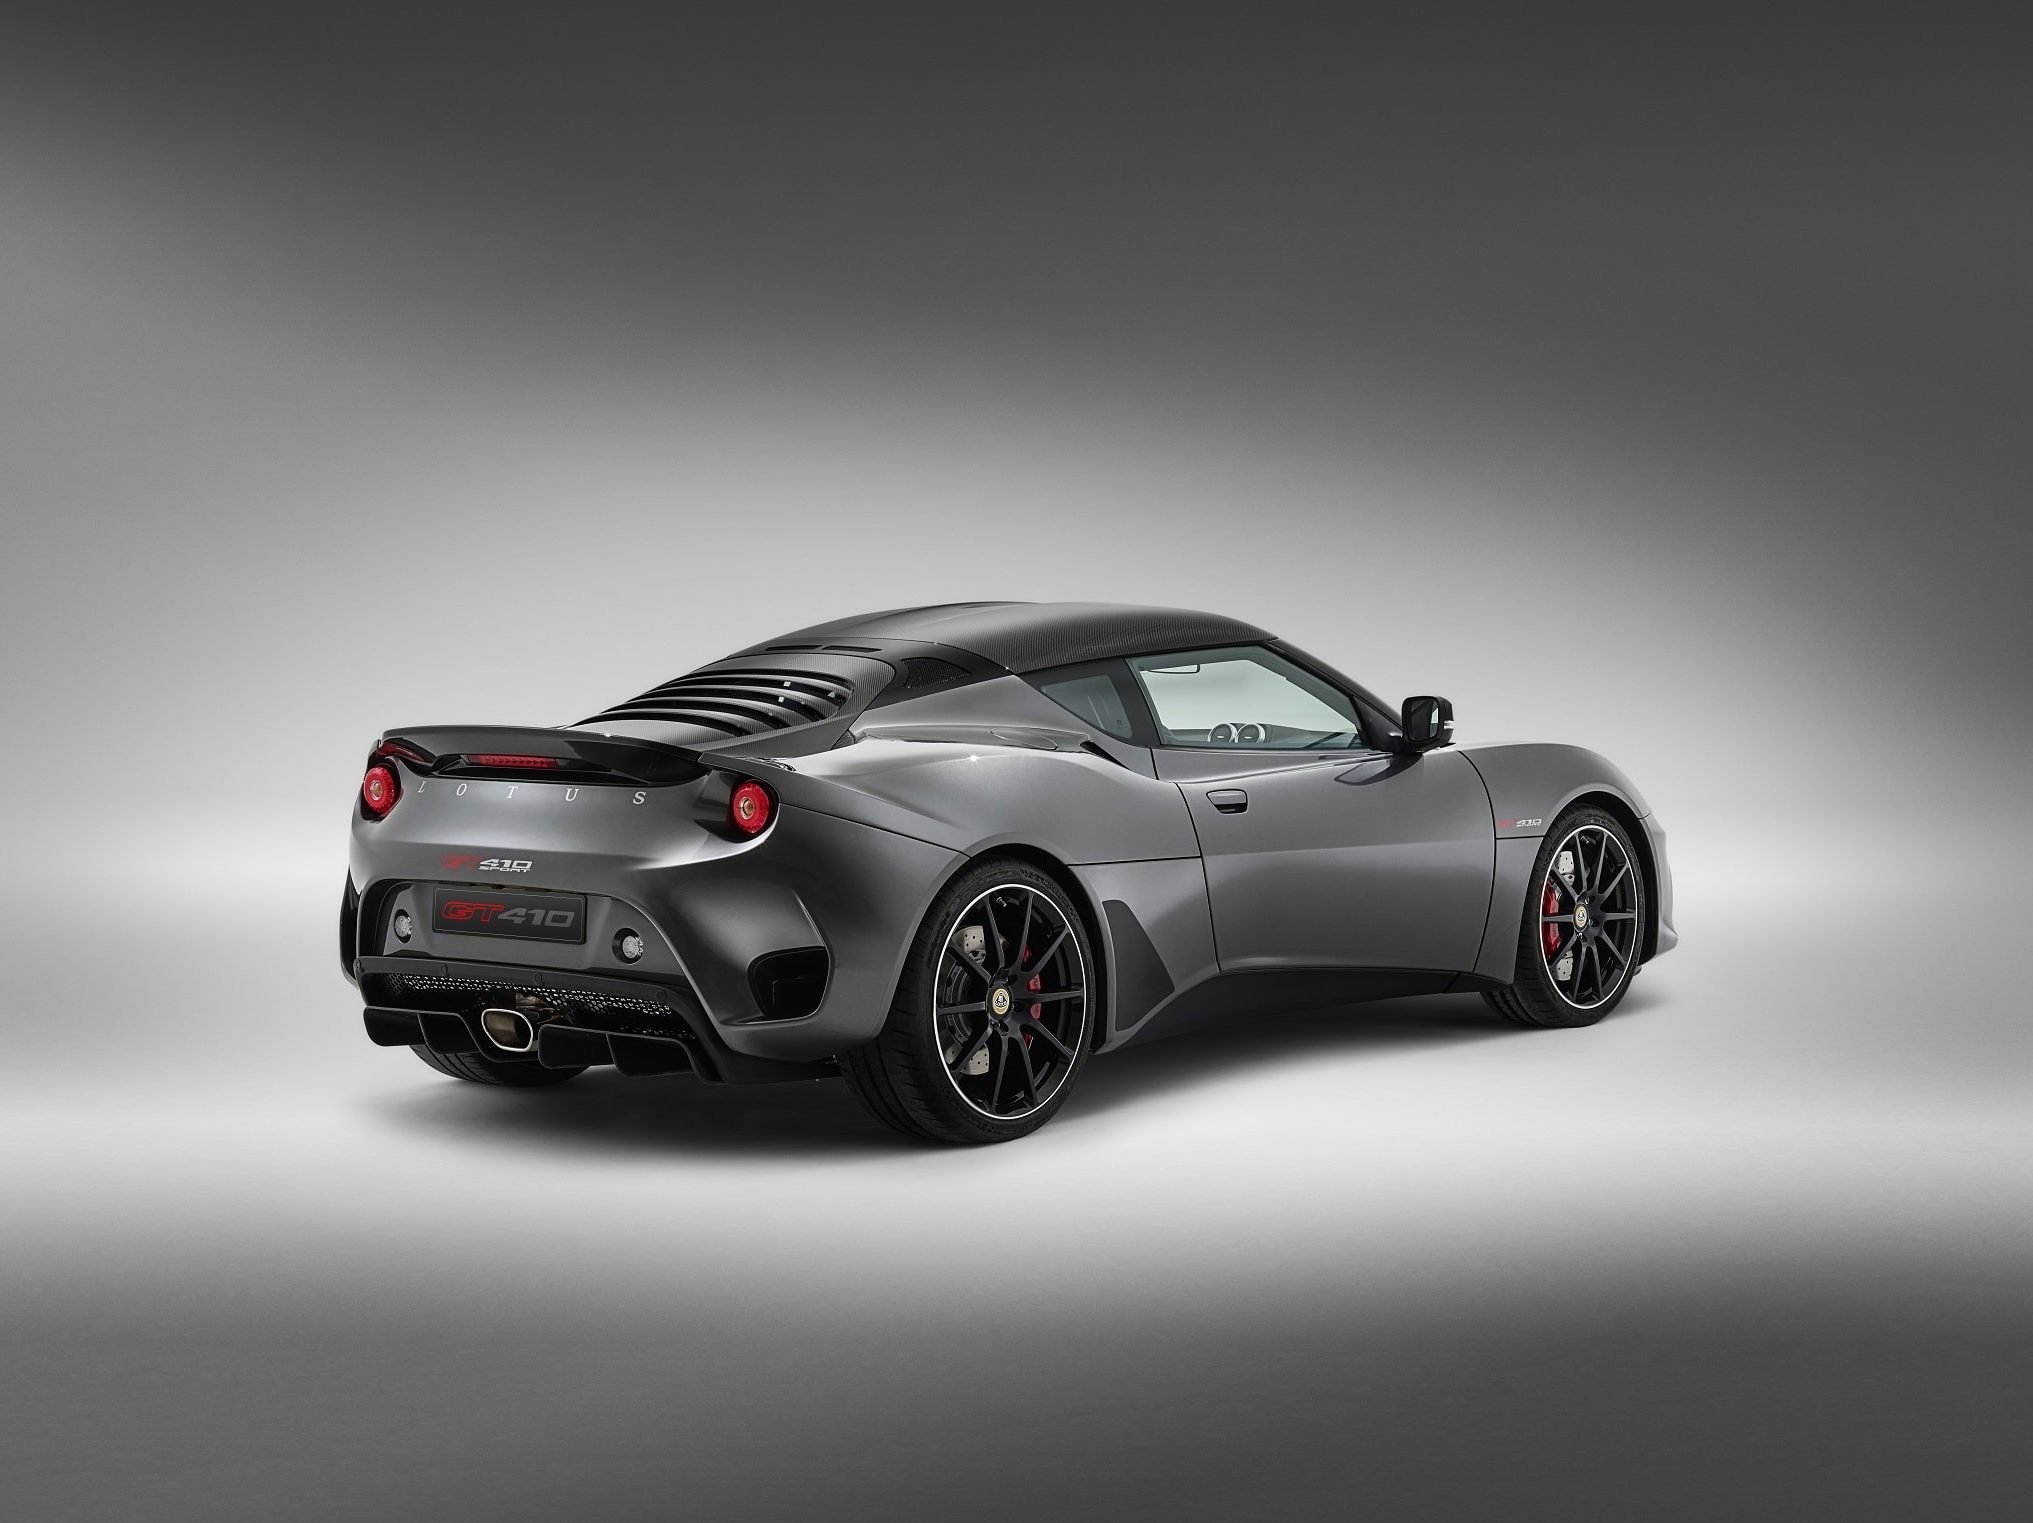 Lotus Evora Sport 410 - Bauden racing cars